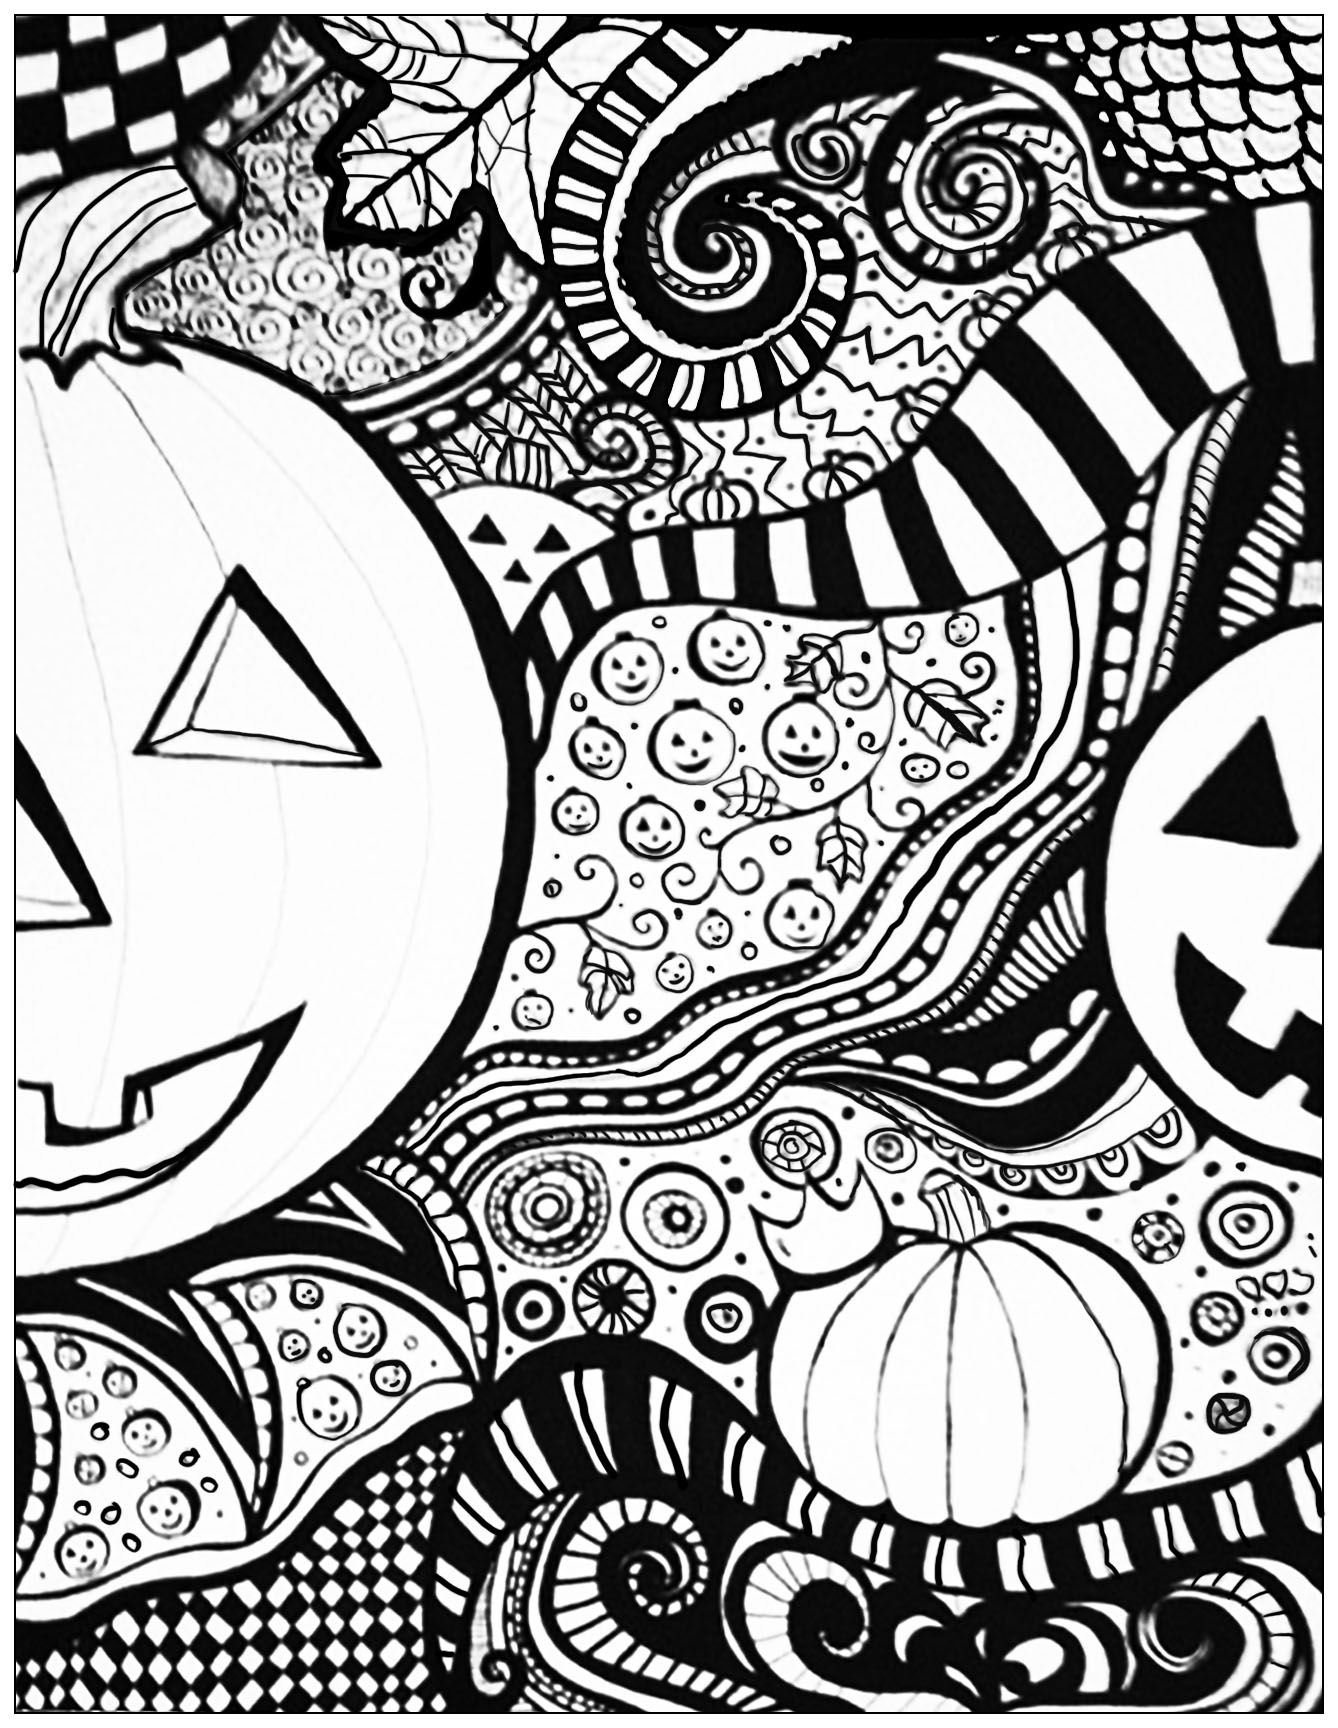 Coloring Page Halloween Sheet Drawing To Print Color With A Big Pumpkin